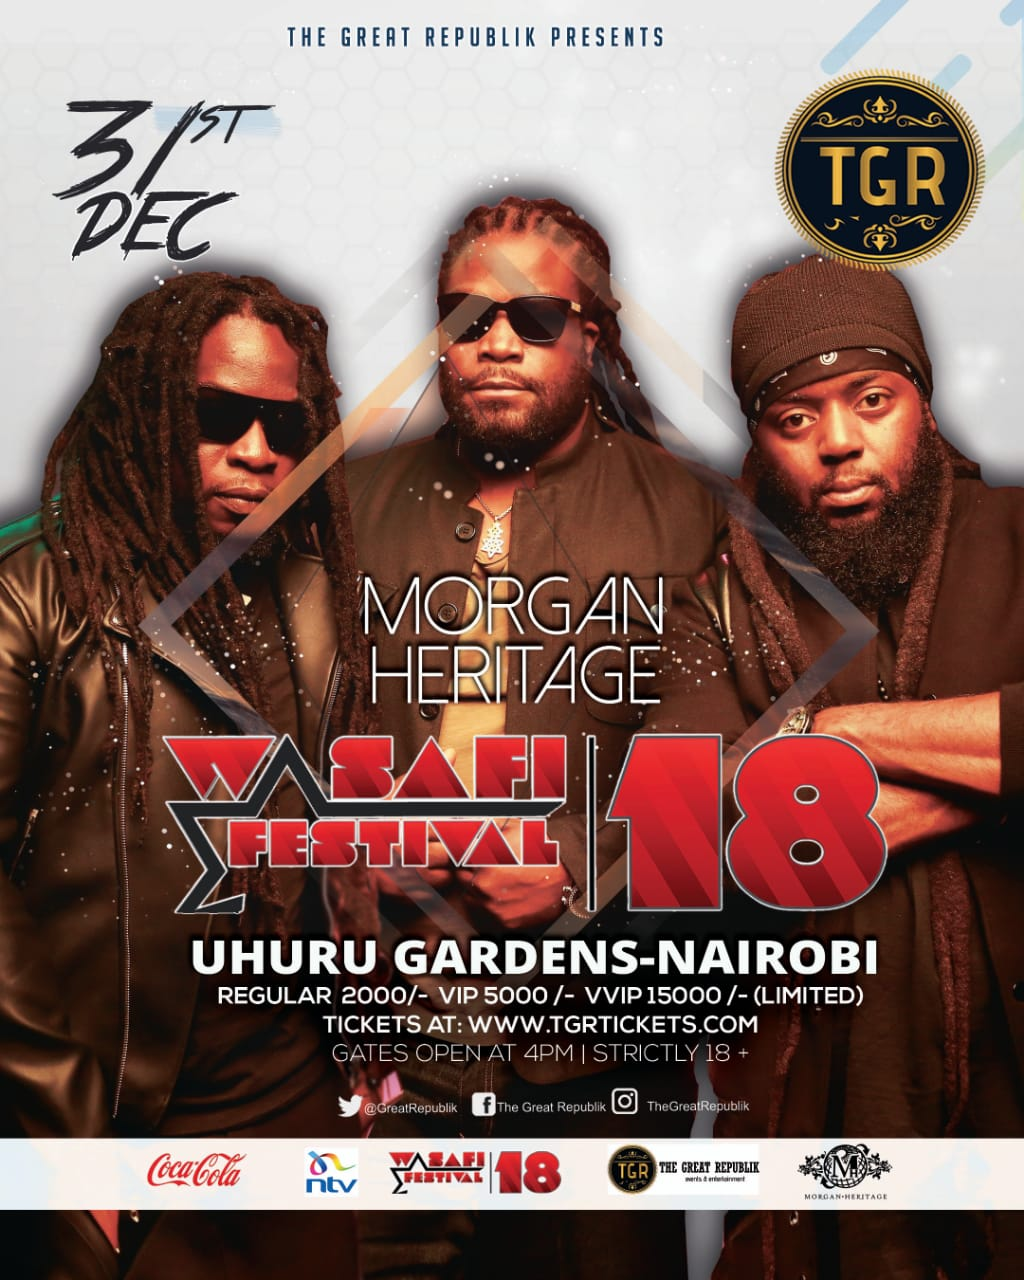 Morgan Heritage to perform at Wasafi Festival in Kenya on December 31st